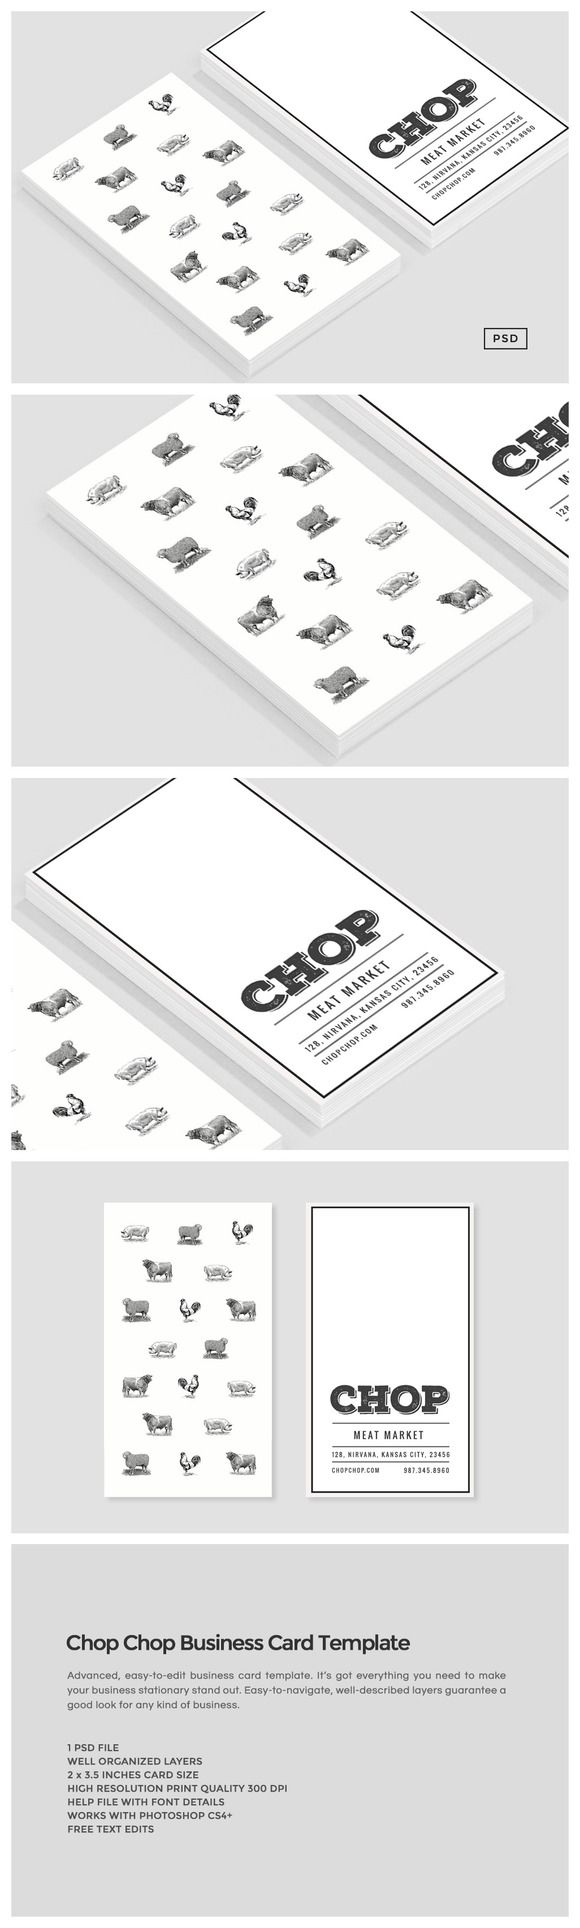 194 best business cards templates images on pinterest boxes chop chop business card template by the design label on creativemarket magicingreecefo Image collections